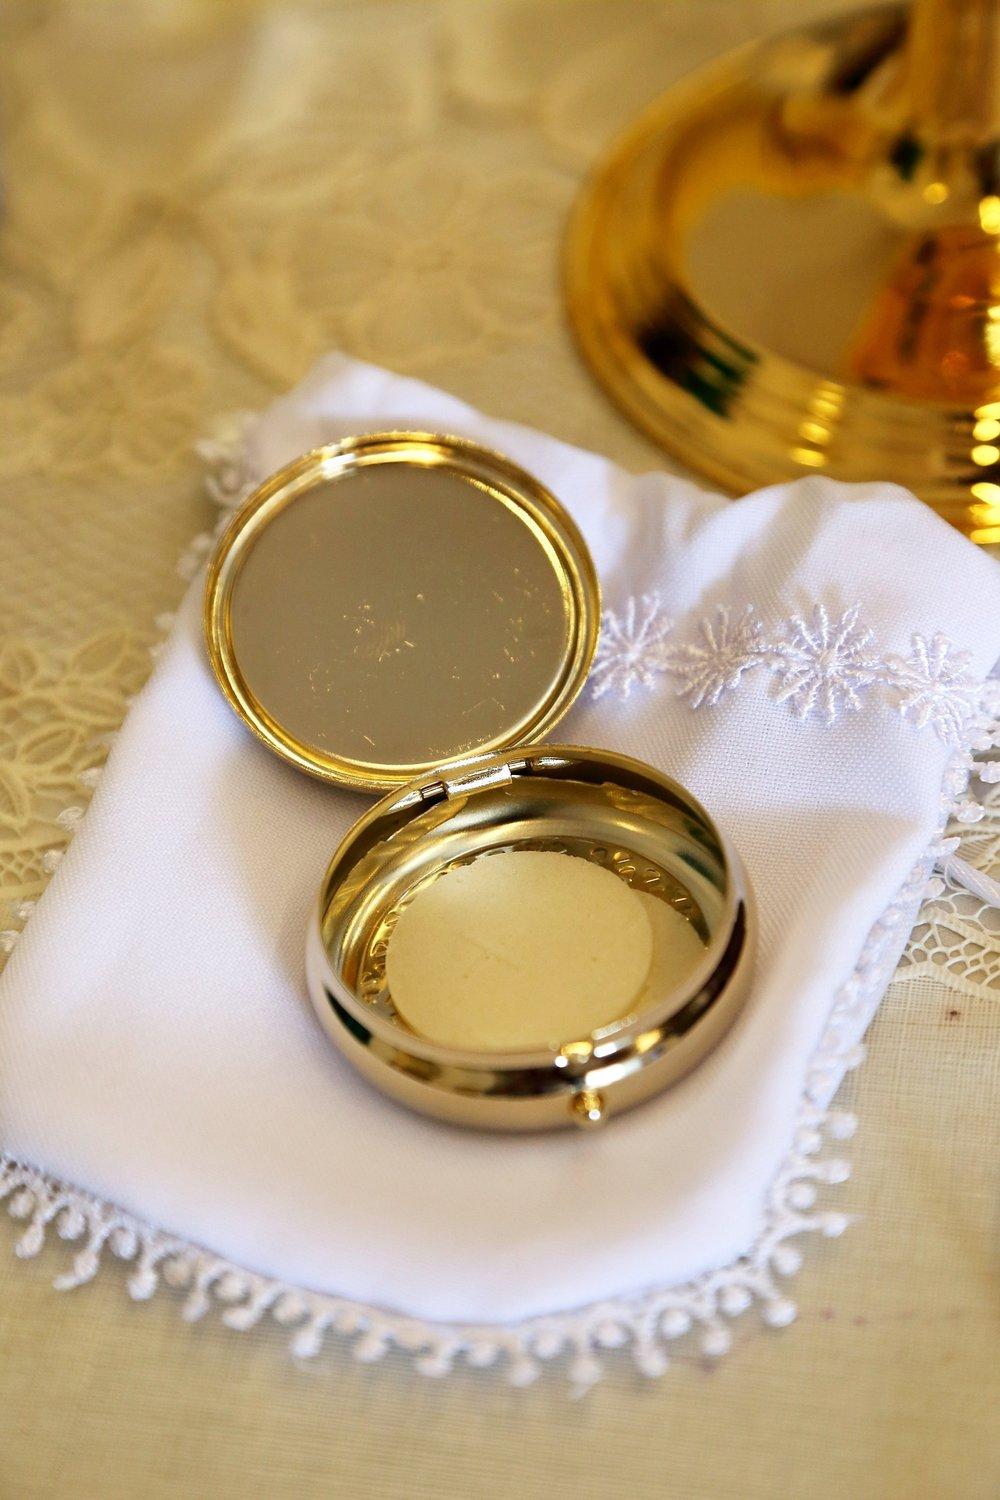 Pyx holding the body of Christ